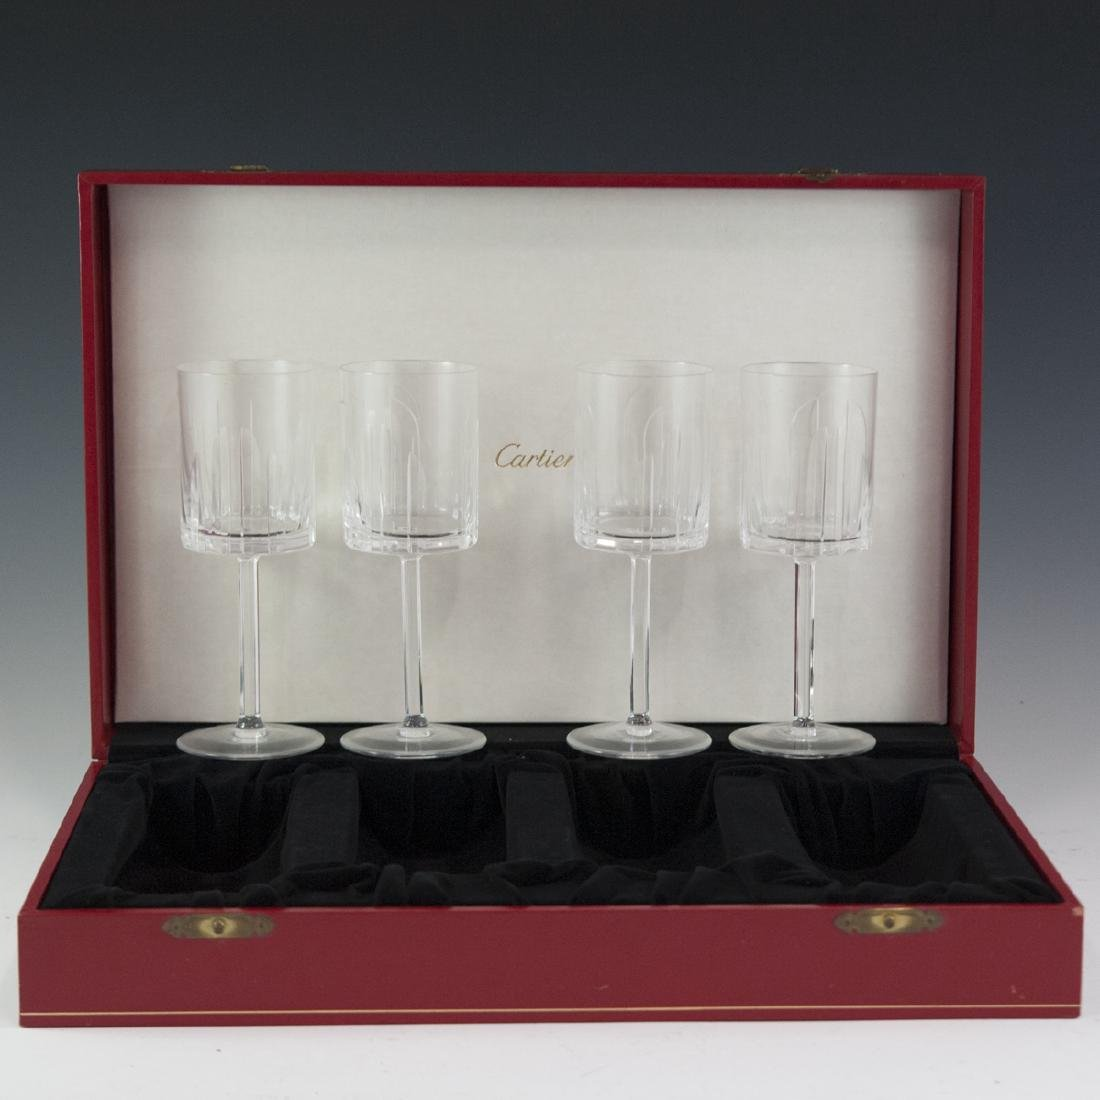 Cartier Crystal Wine Glasses